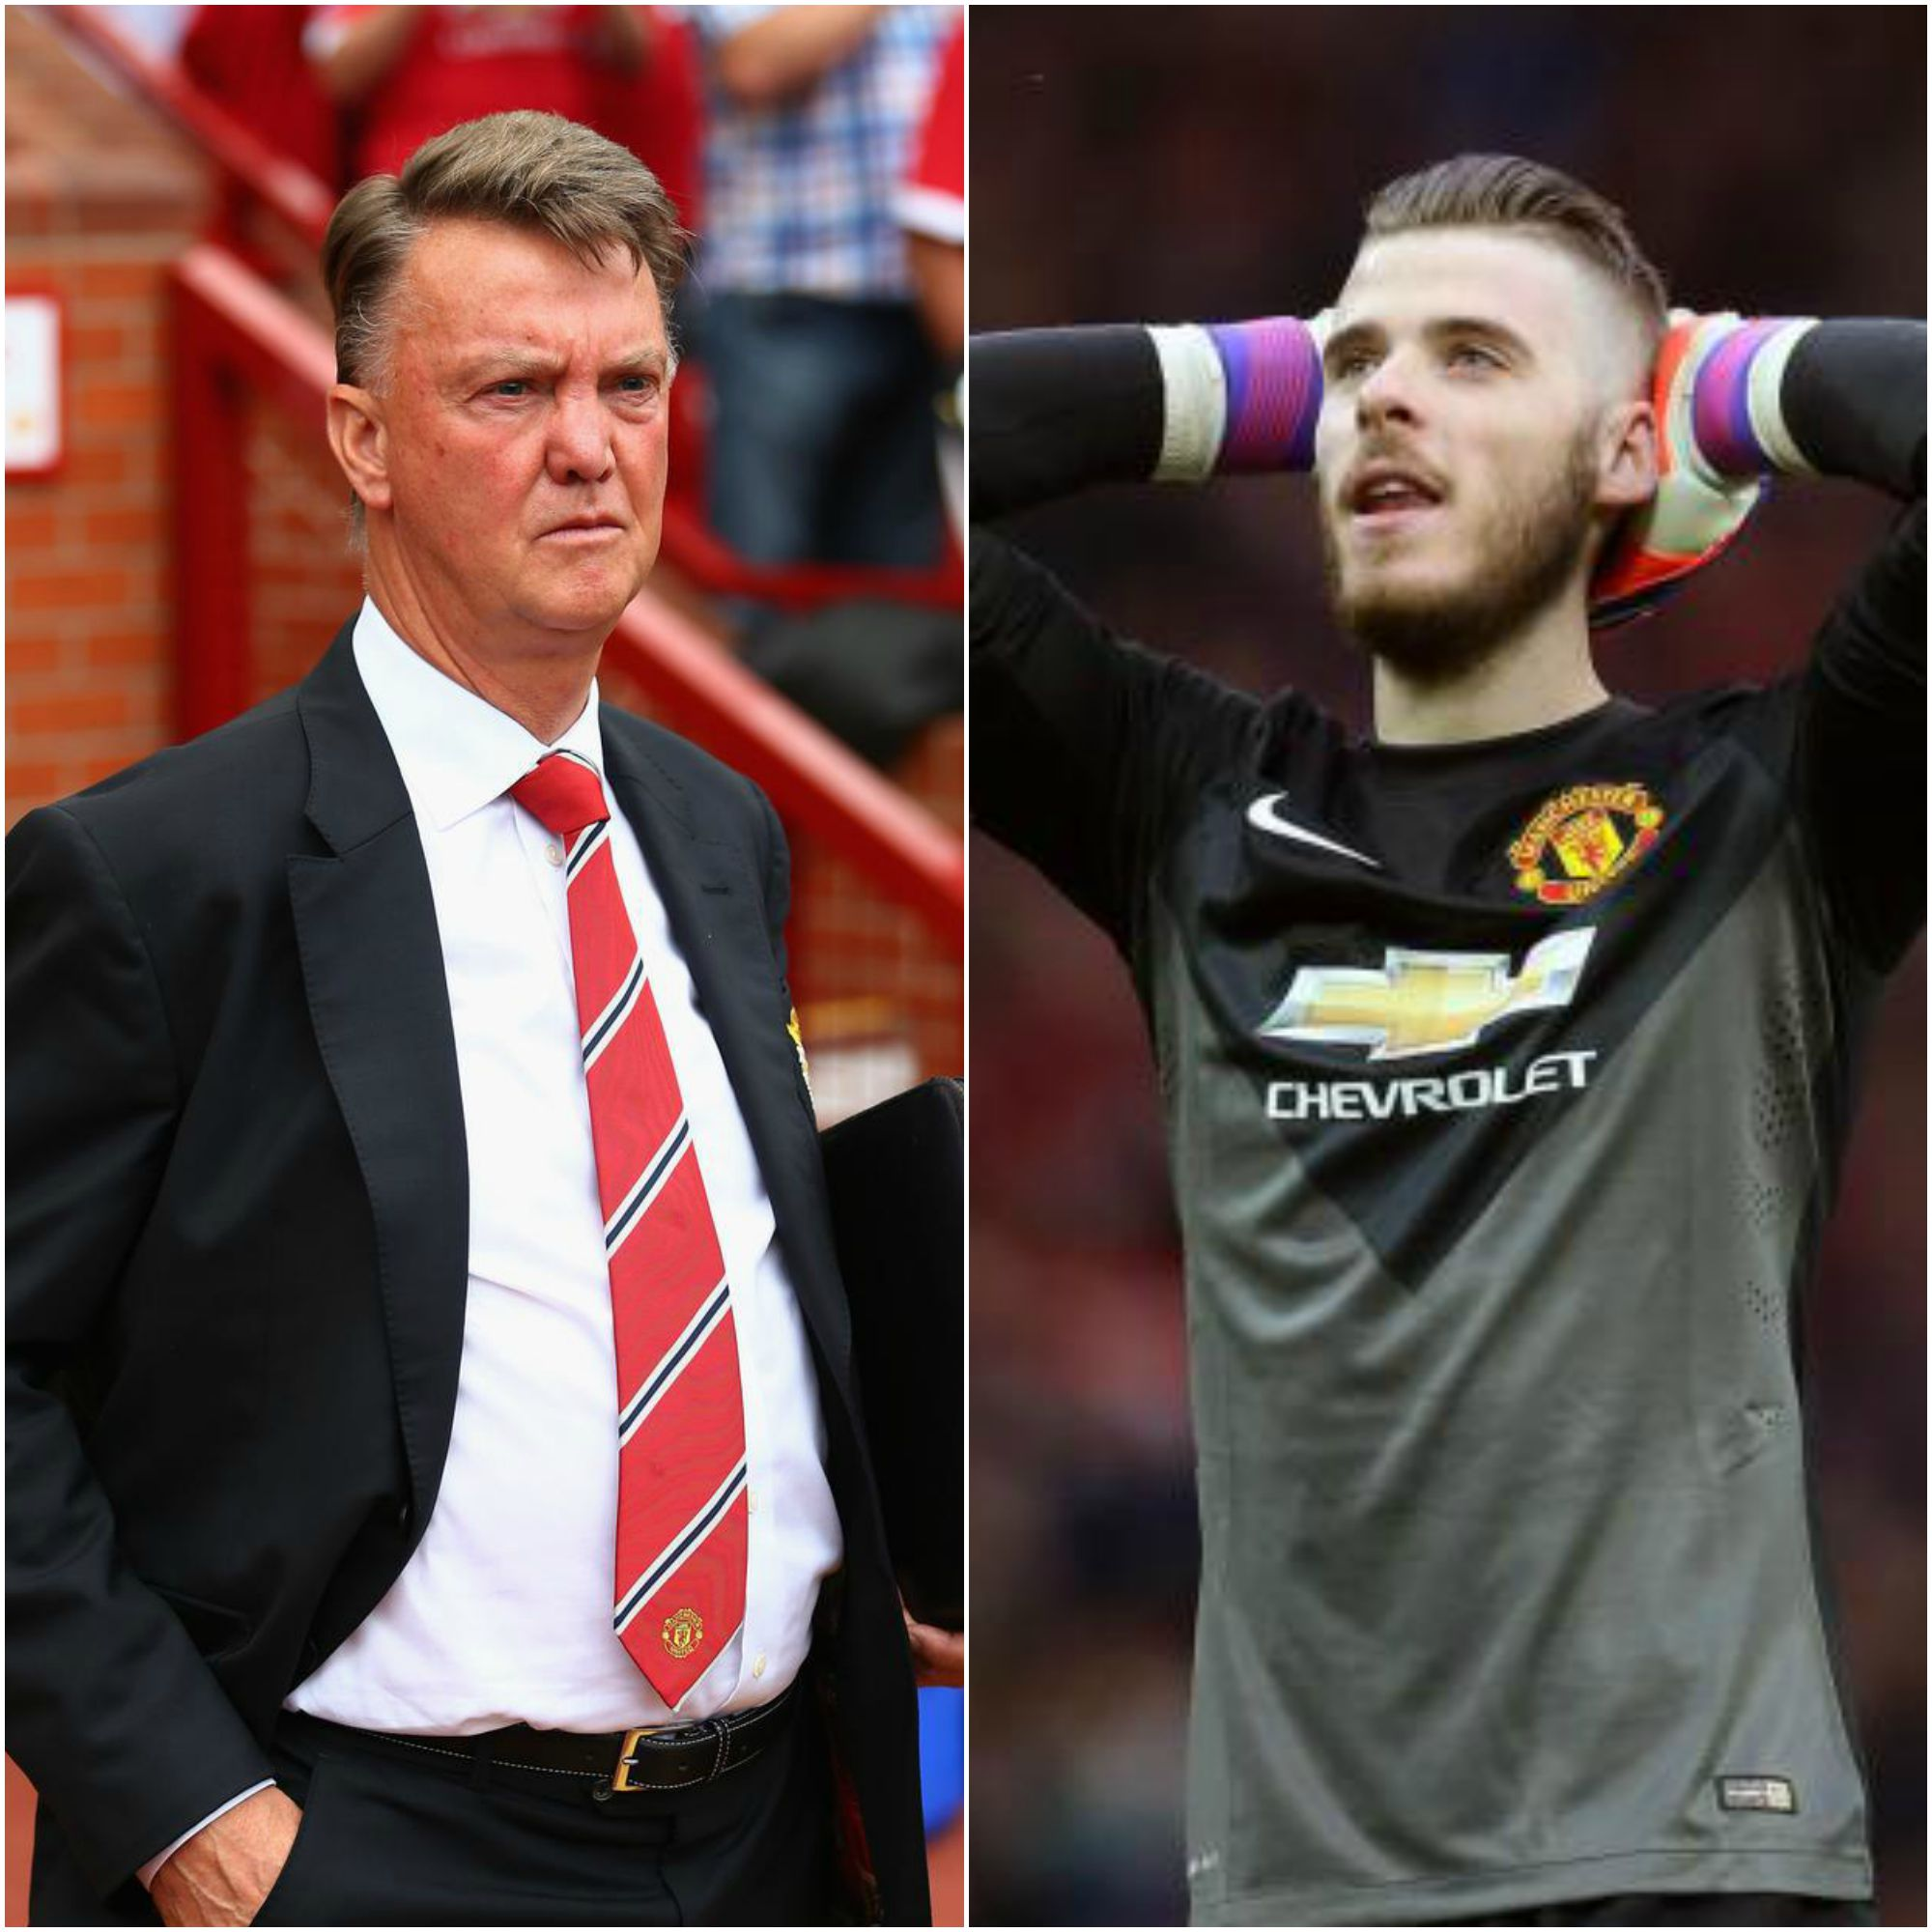 Louis van Gaal willing to force David De Gea to sign new contract by refusing to play him otherwise – report